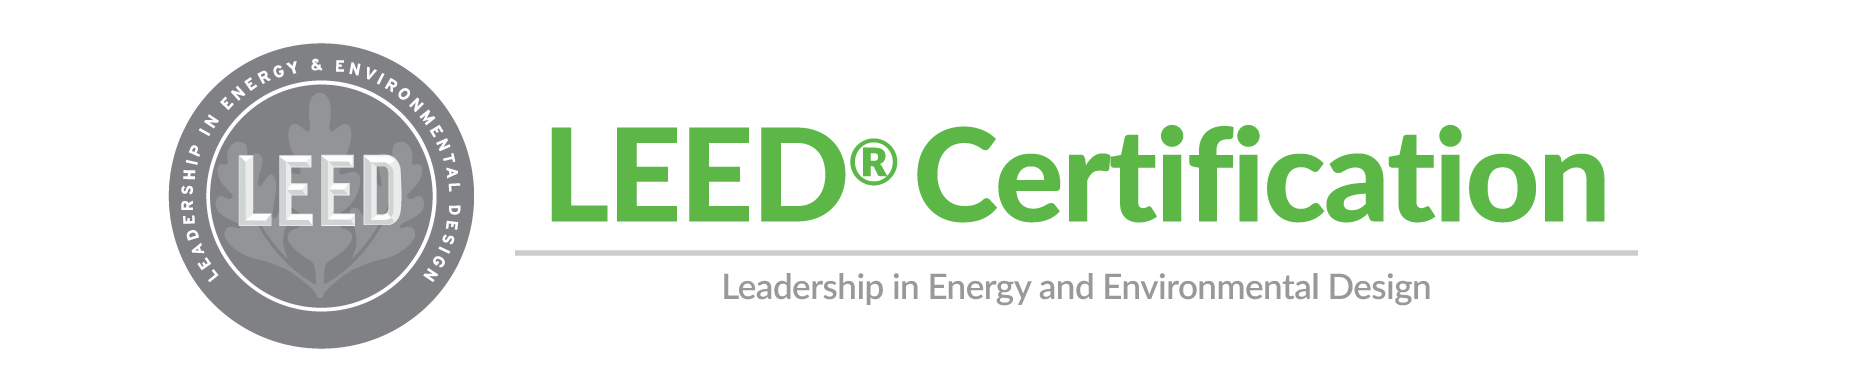 Leed Certification Bioconstruccin Y Energa Alternativa